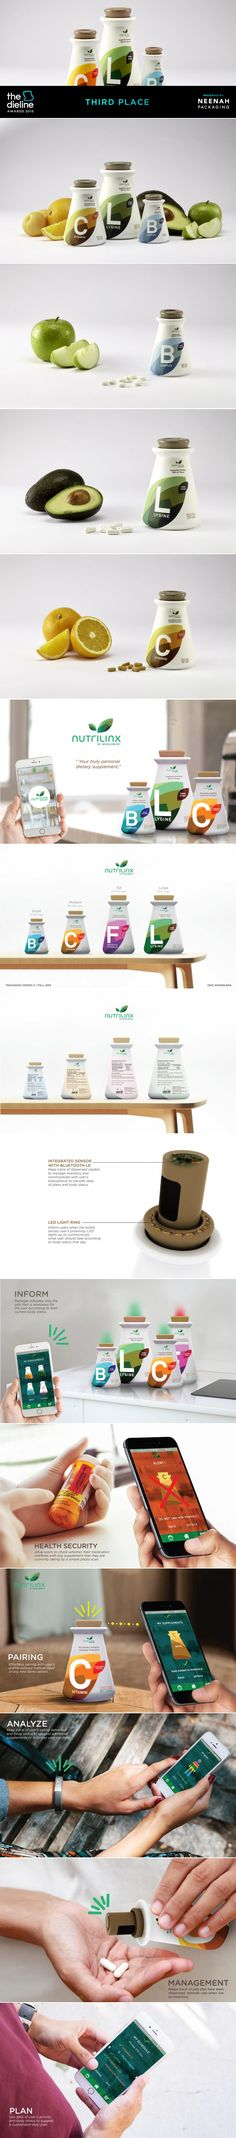 The Dieline Awards 2015: 3rd Place Student- Nutrilinx Dietary Supplements — The Dieline | Packaging & Branding Design & Innovation News